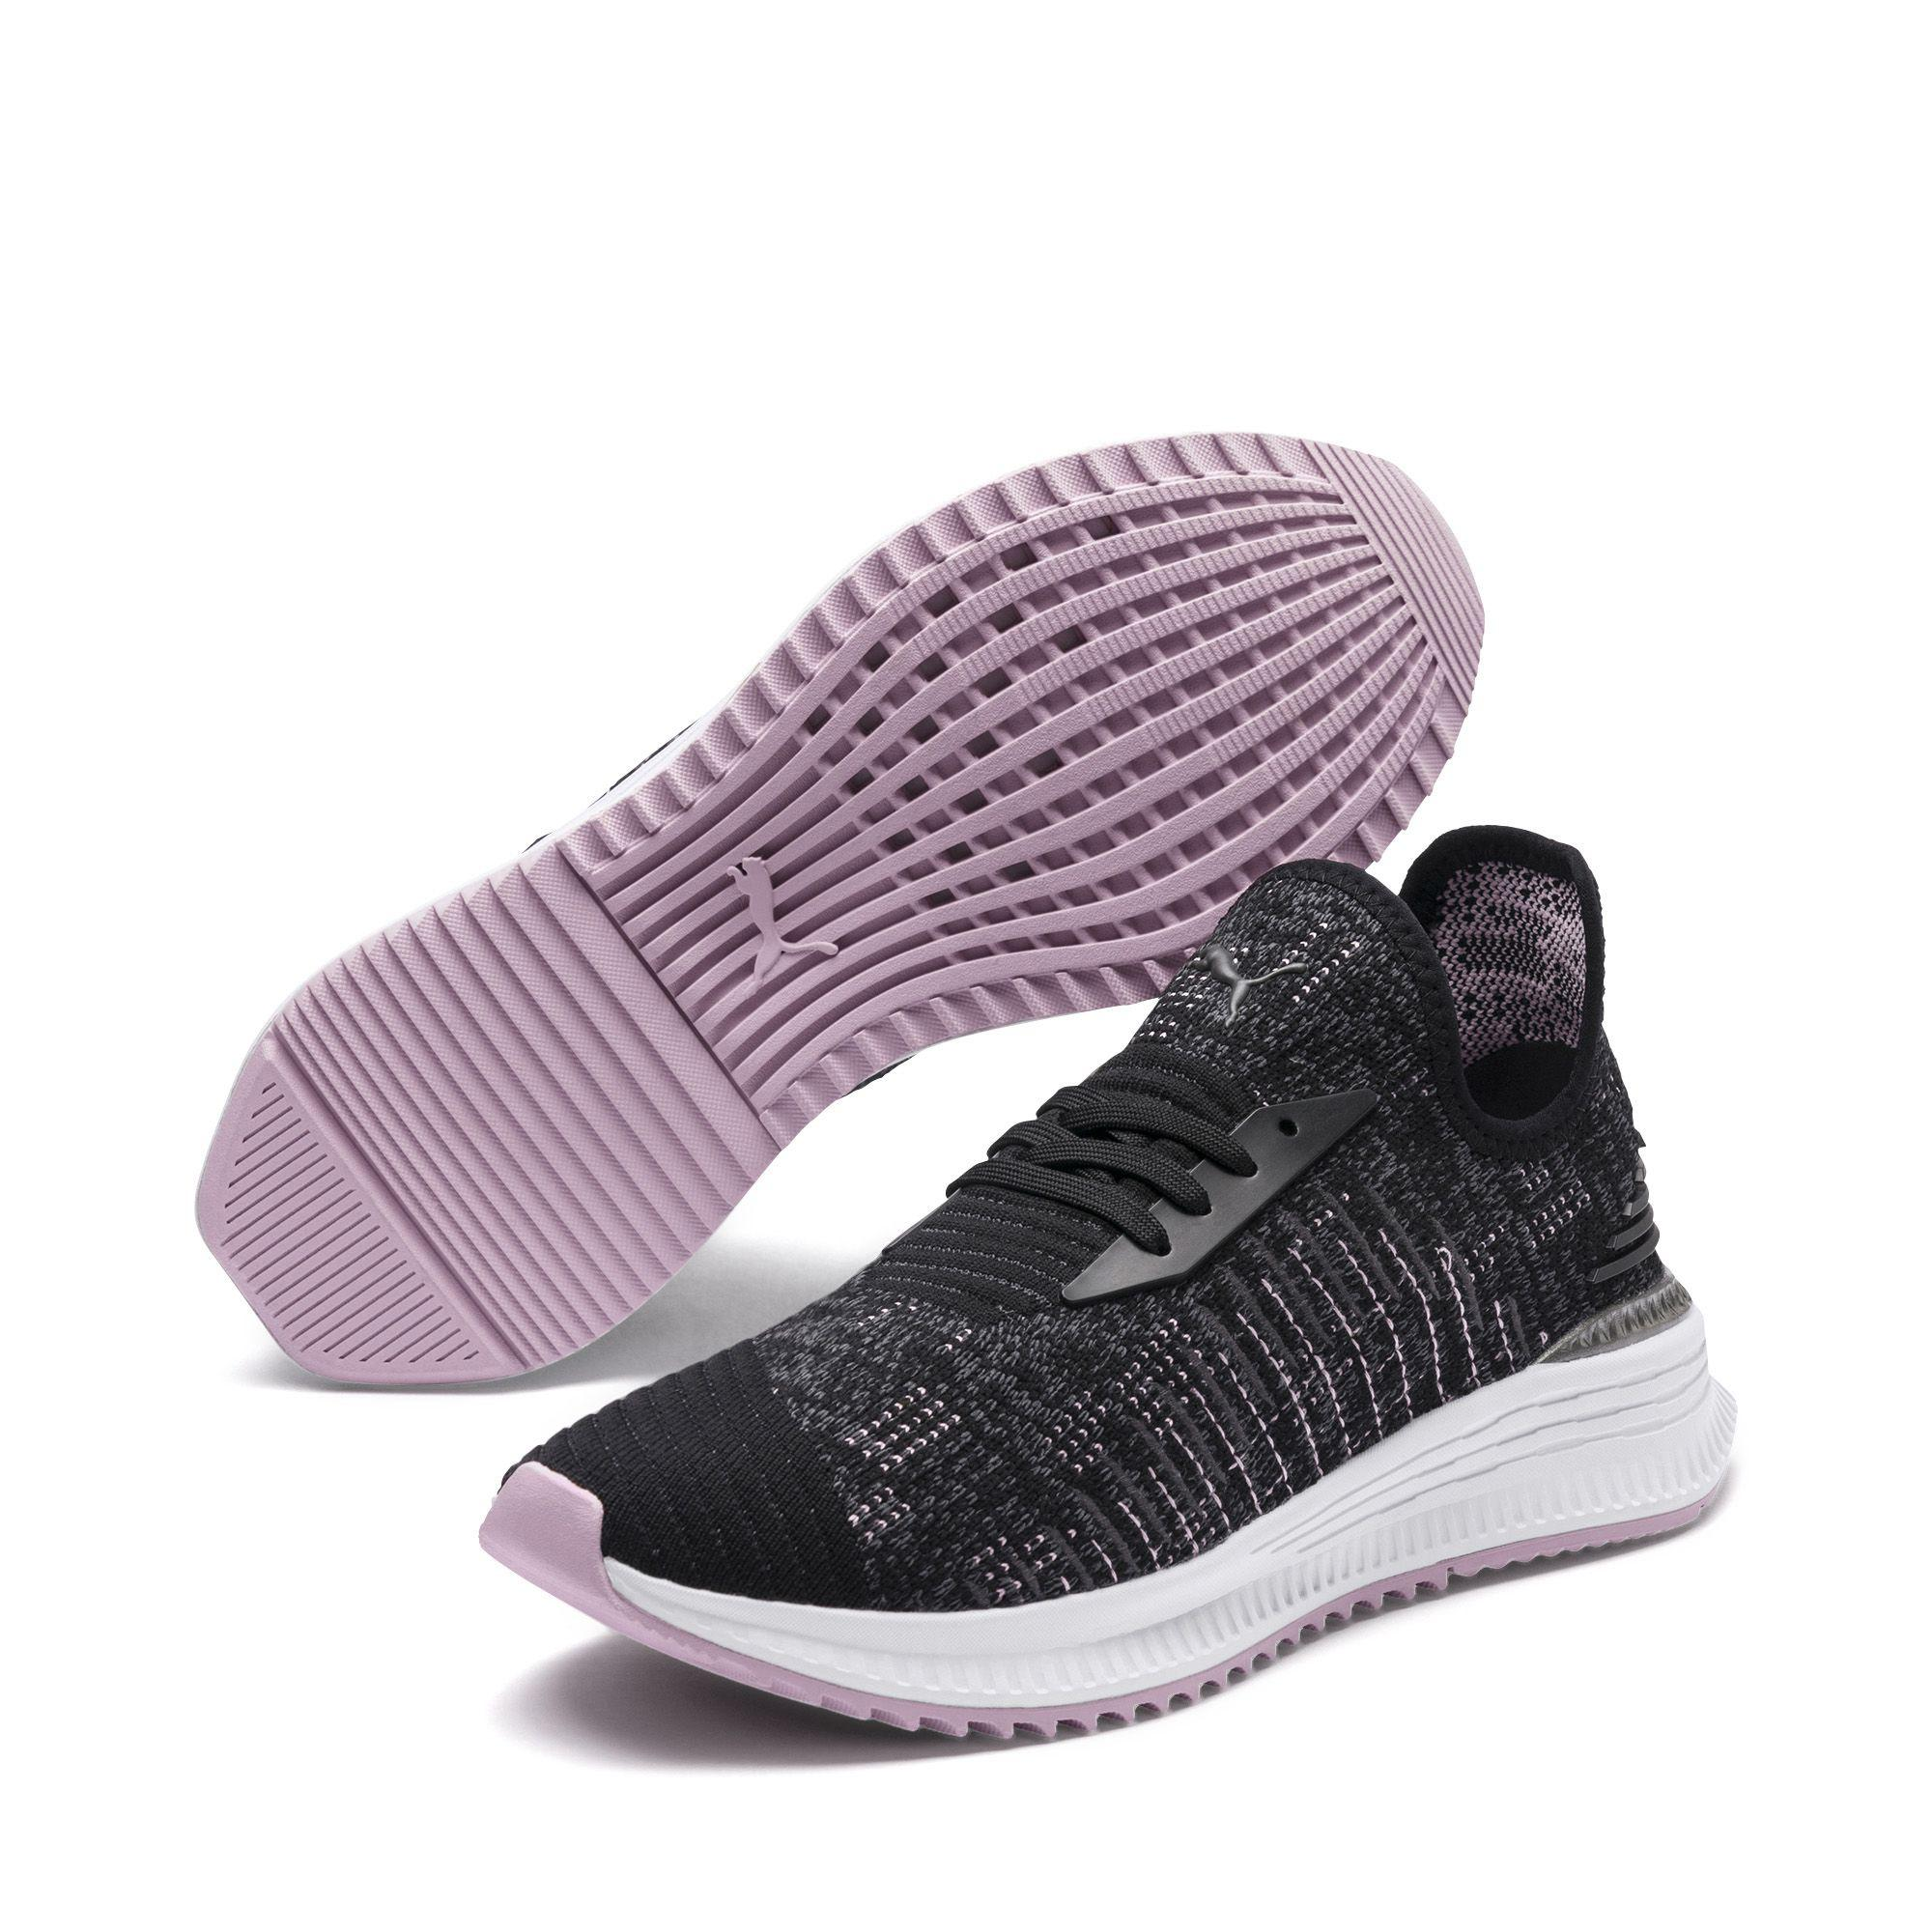 detailed look a292a 6de25 ... Shoes 100% high quality 0e3bc f4327 Lyst - Puma Avid Evoknit Mosaic  Womens Sneakers in Black ...